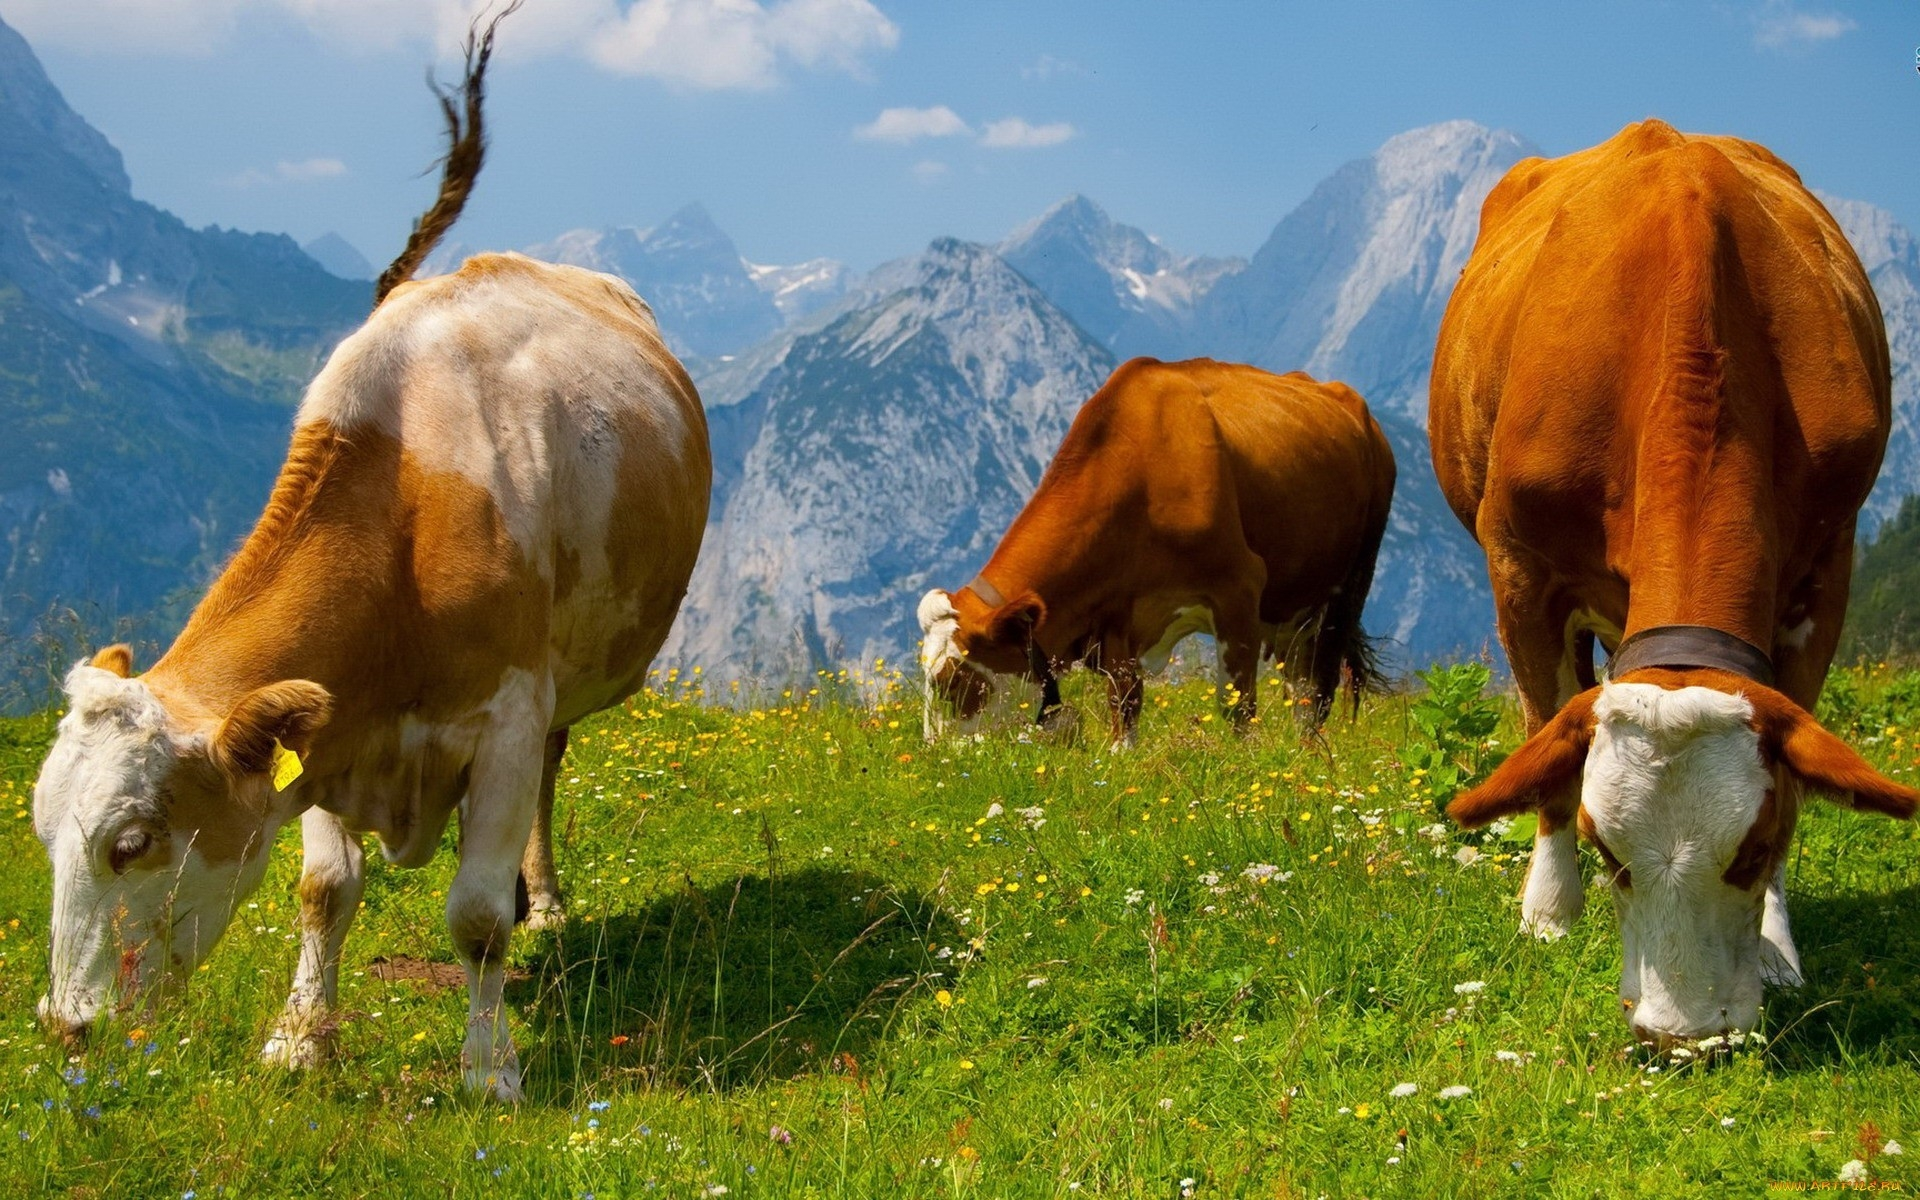 Cute Wallpaper Save The Animals Cows Wallpapers Pictures Images